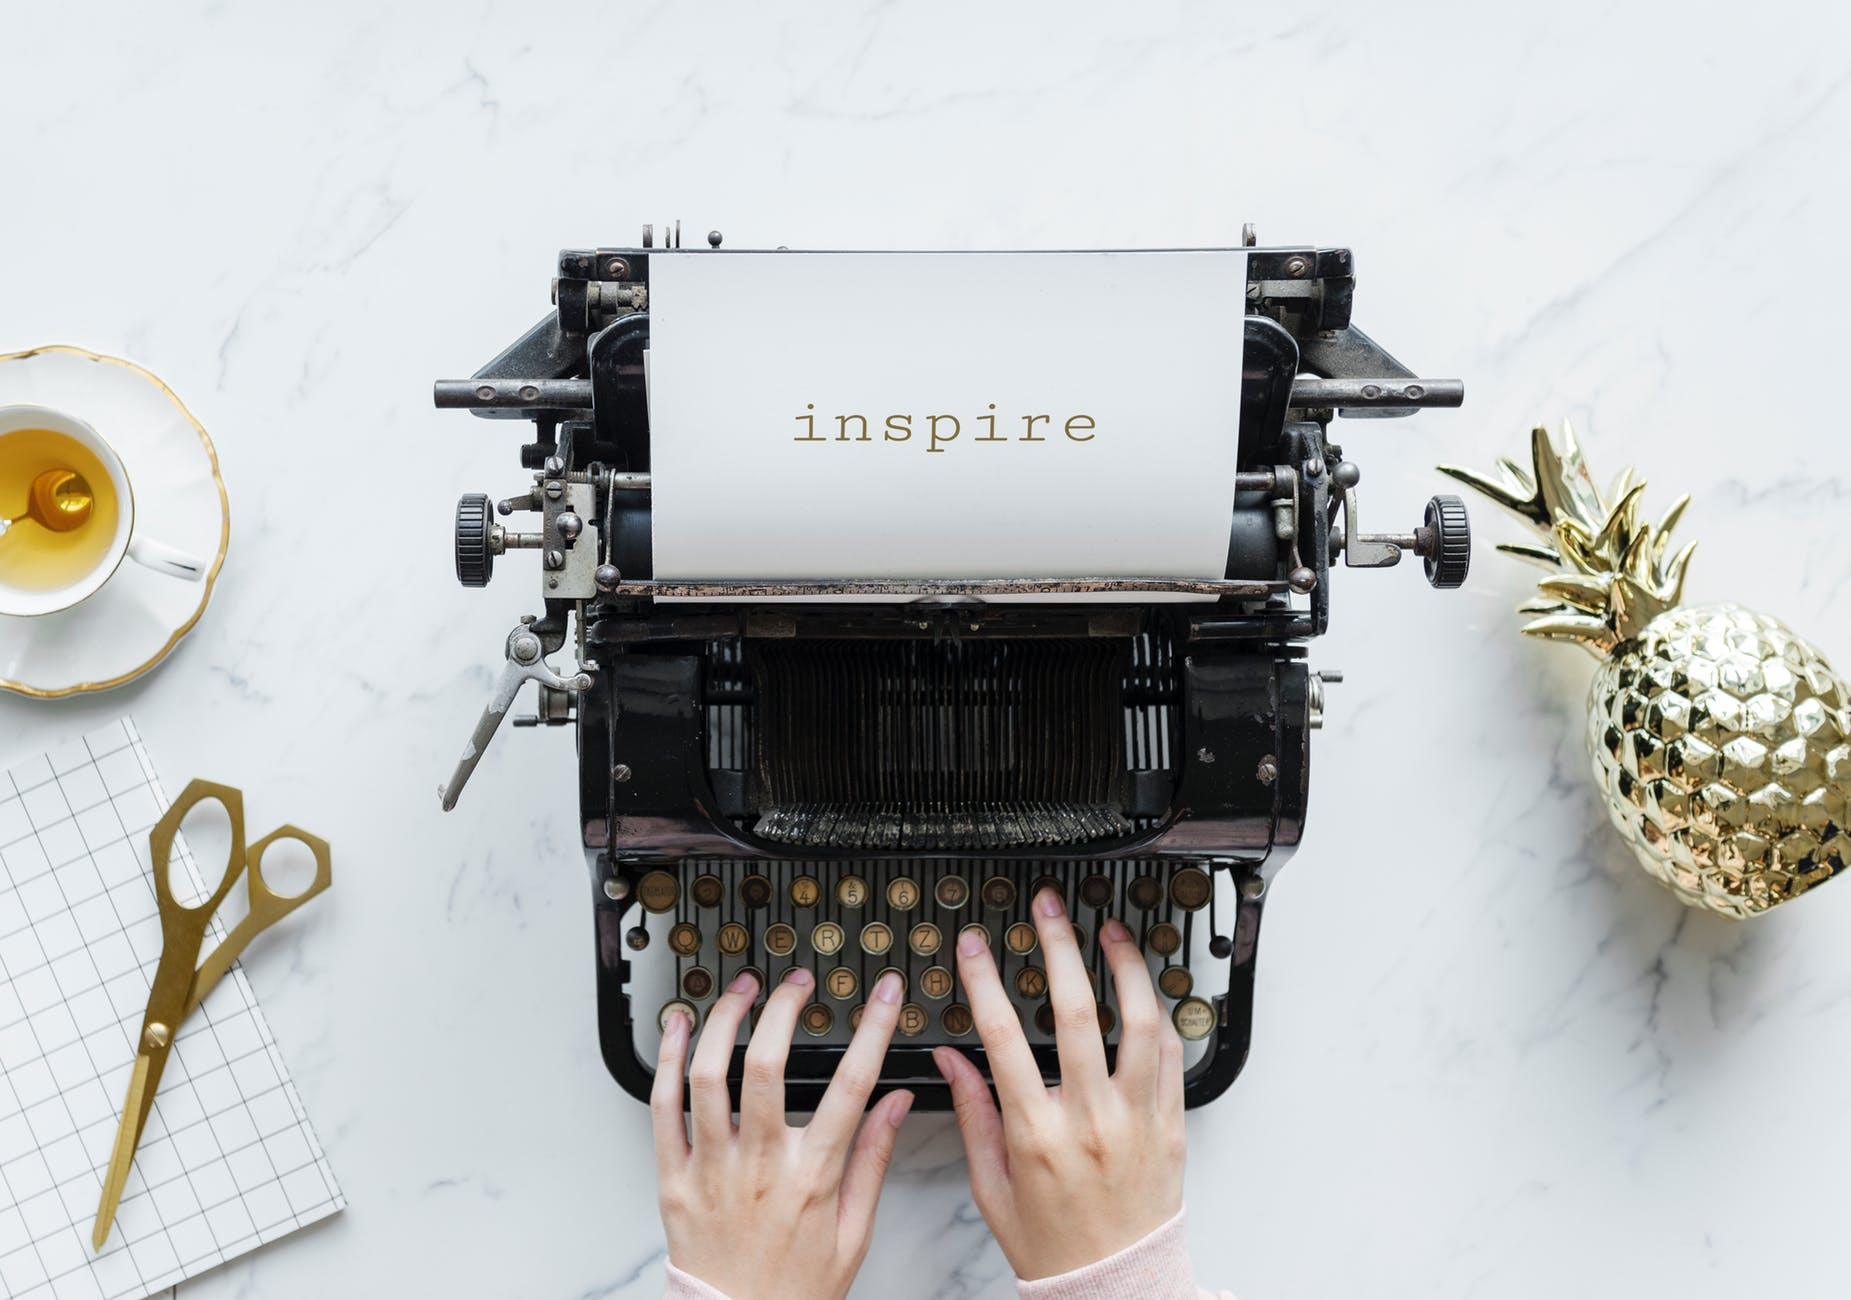 person using inspire typewriter